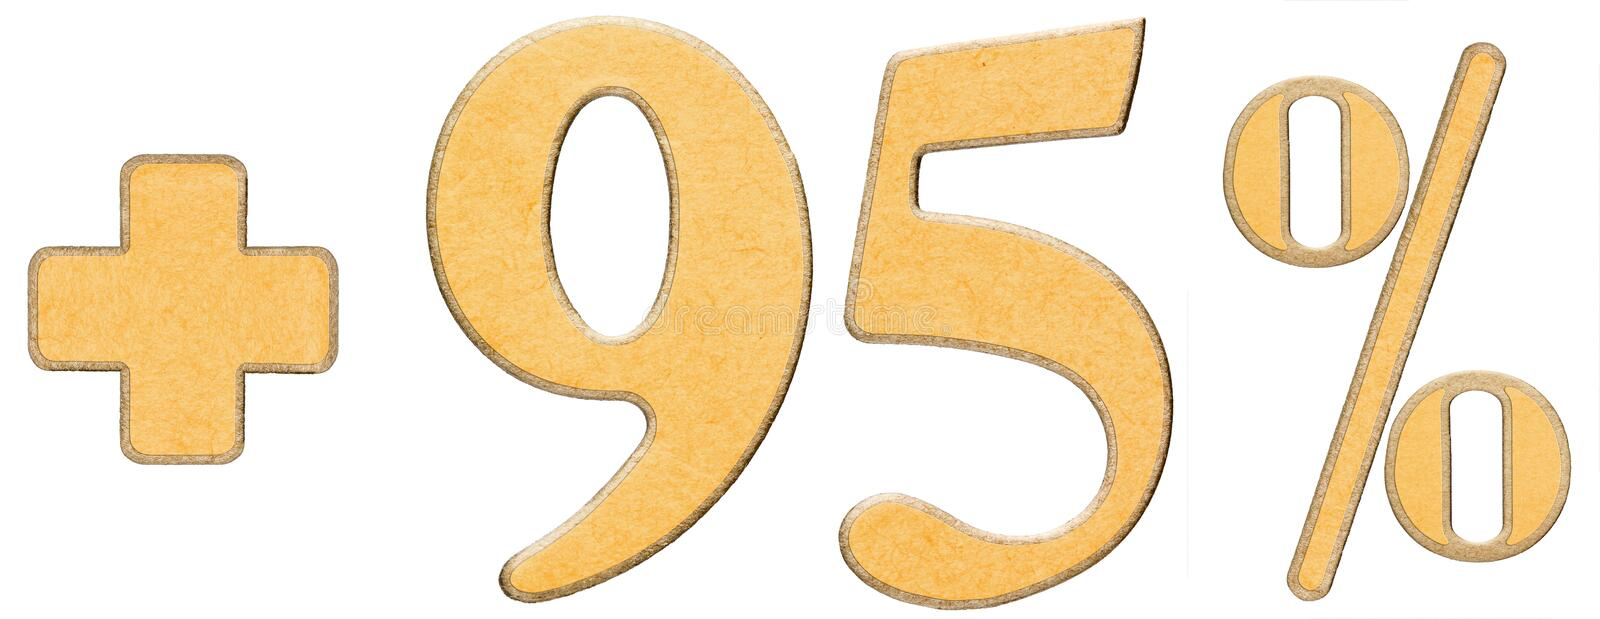 Download Percent Benefits, Plus 95 Ninety Five Percent, Numerals Isolated Stock Photo - Image: 83713854